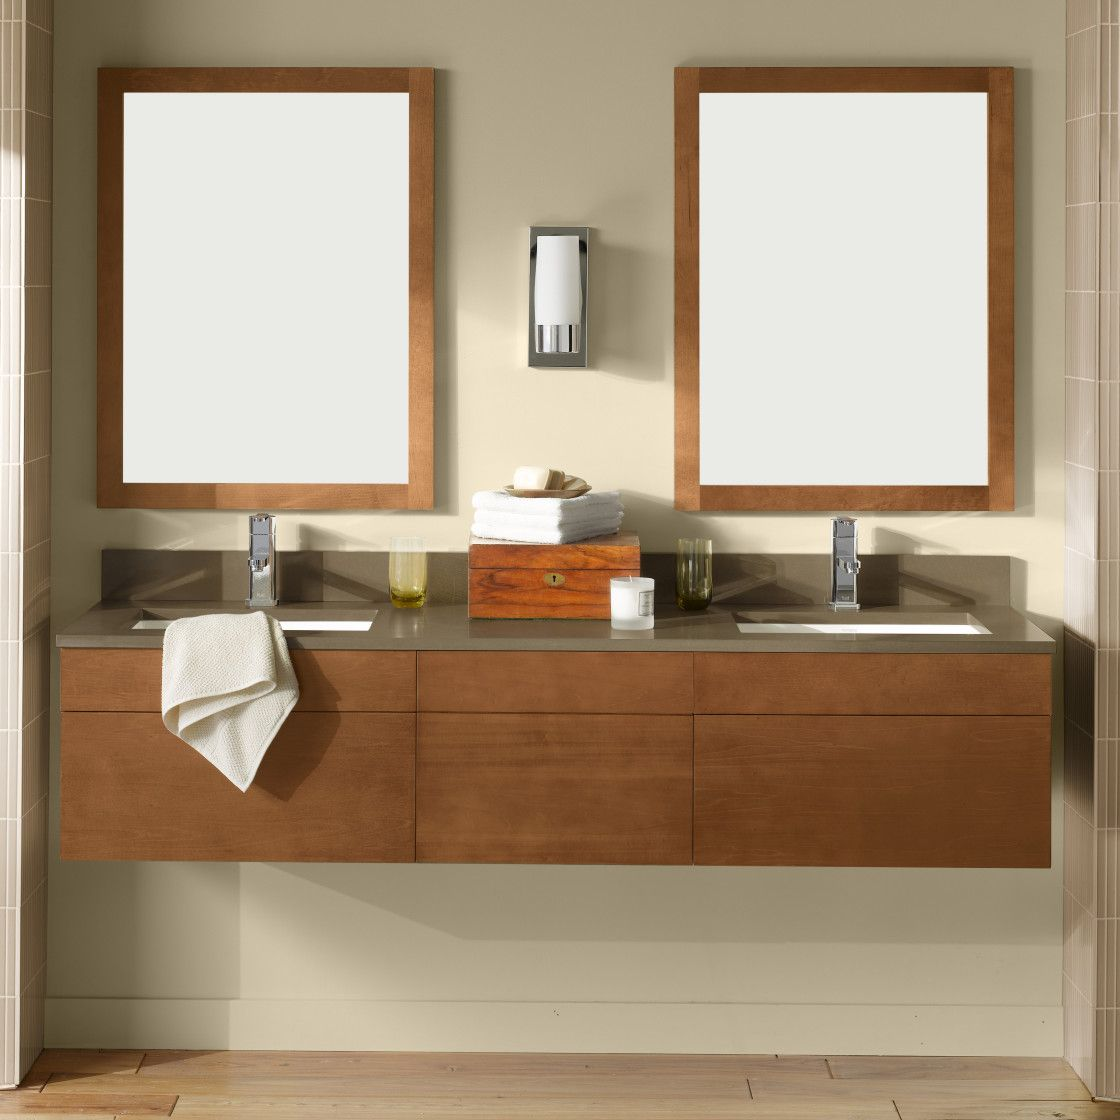 Adorable Custom Design Interior Of Wall Mount Double Sinks Vanities For Small Bathroom Ideas With Feature